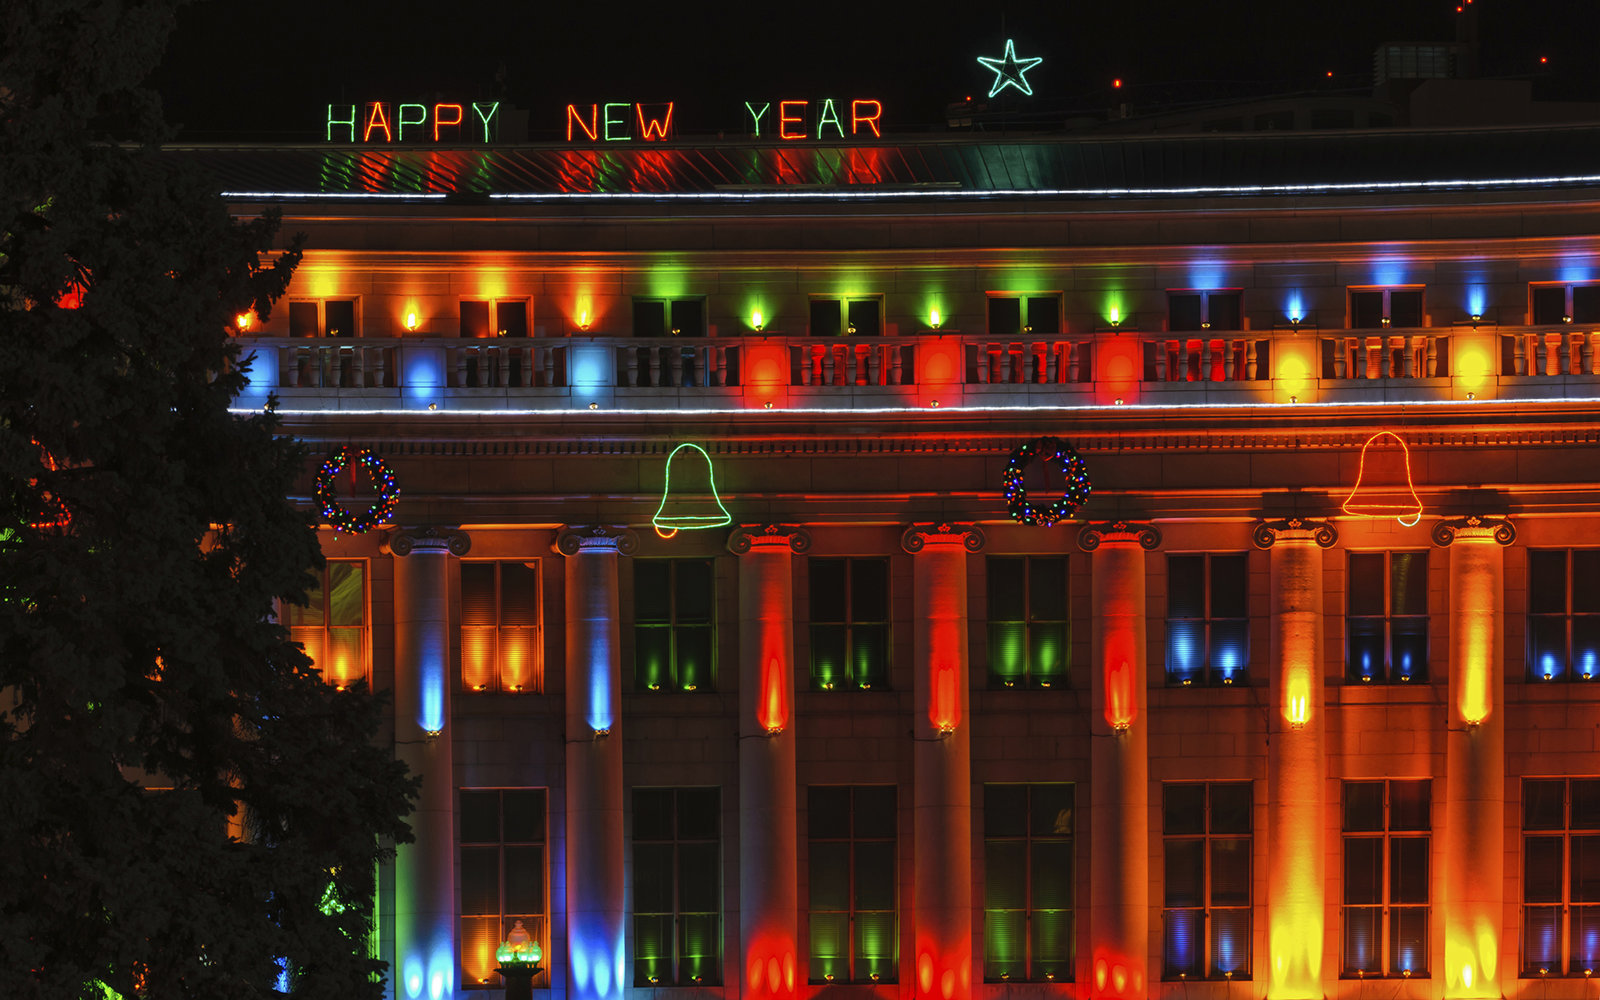 Happy New Year Decorated Building